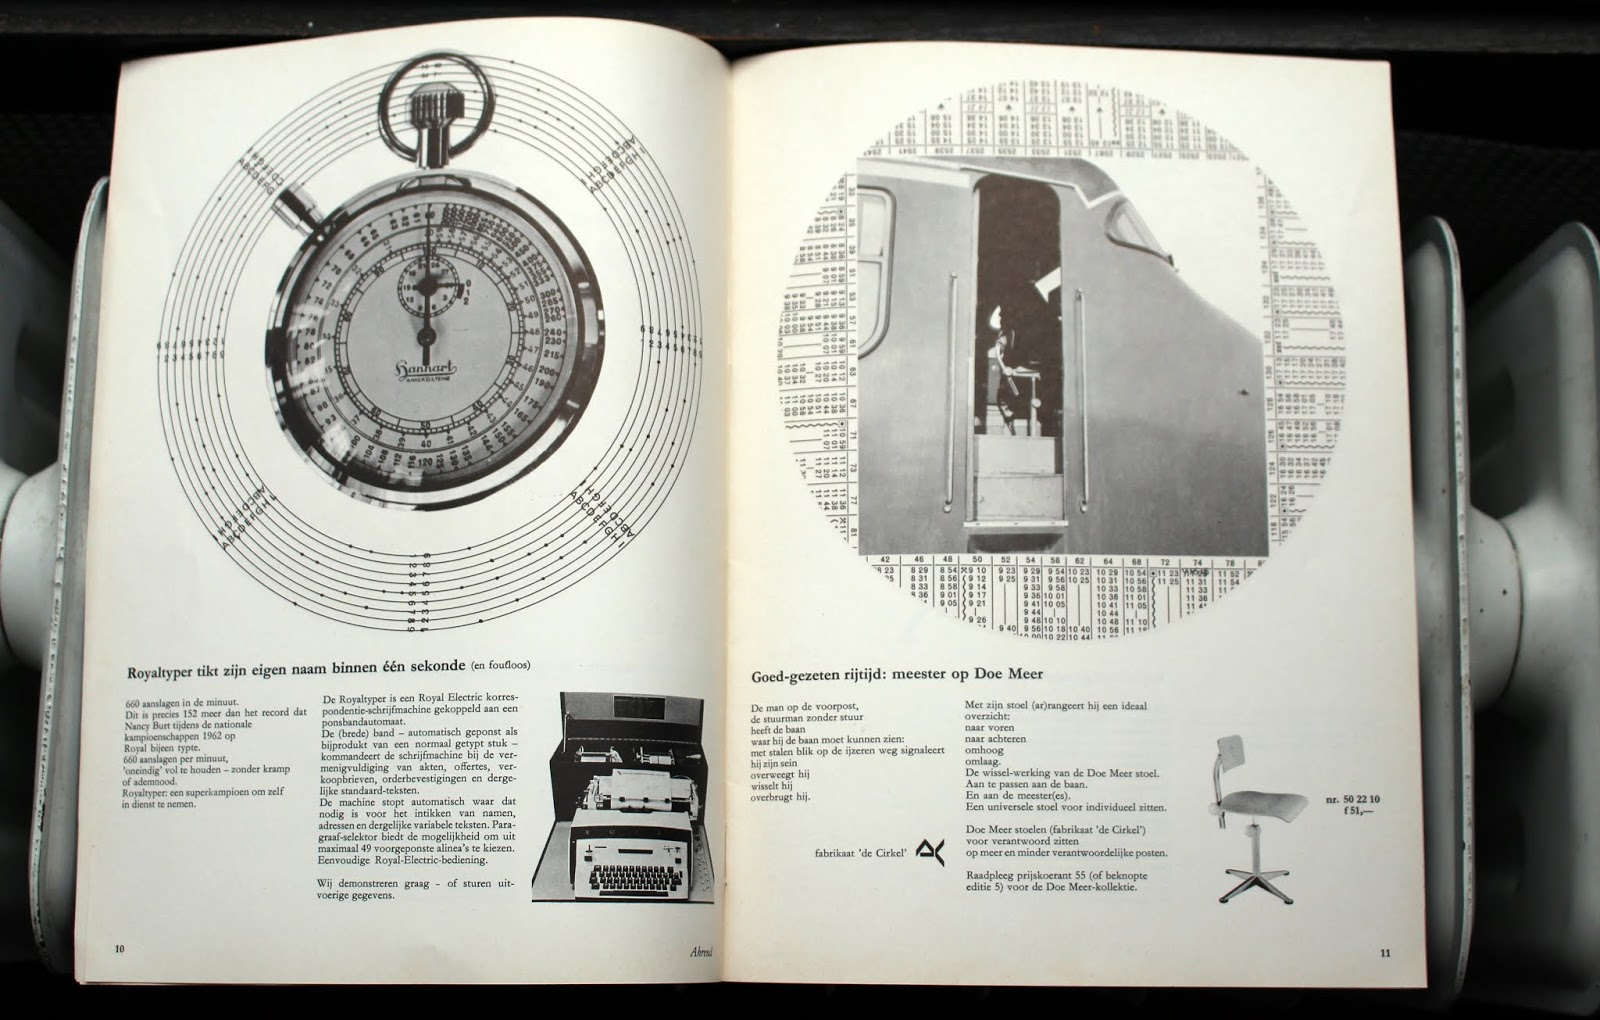 Hoeveel Aanslagen Per Minuut Is Normaal Facetten Ahrend No 14 1962 1963 Graphic Design Ben Bos Jan